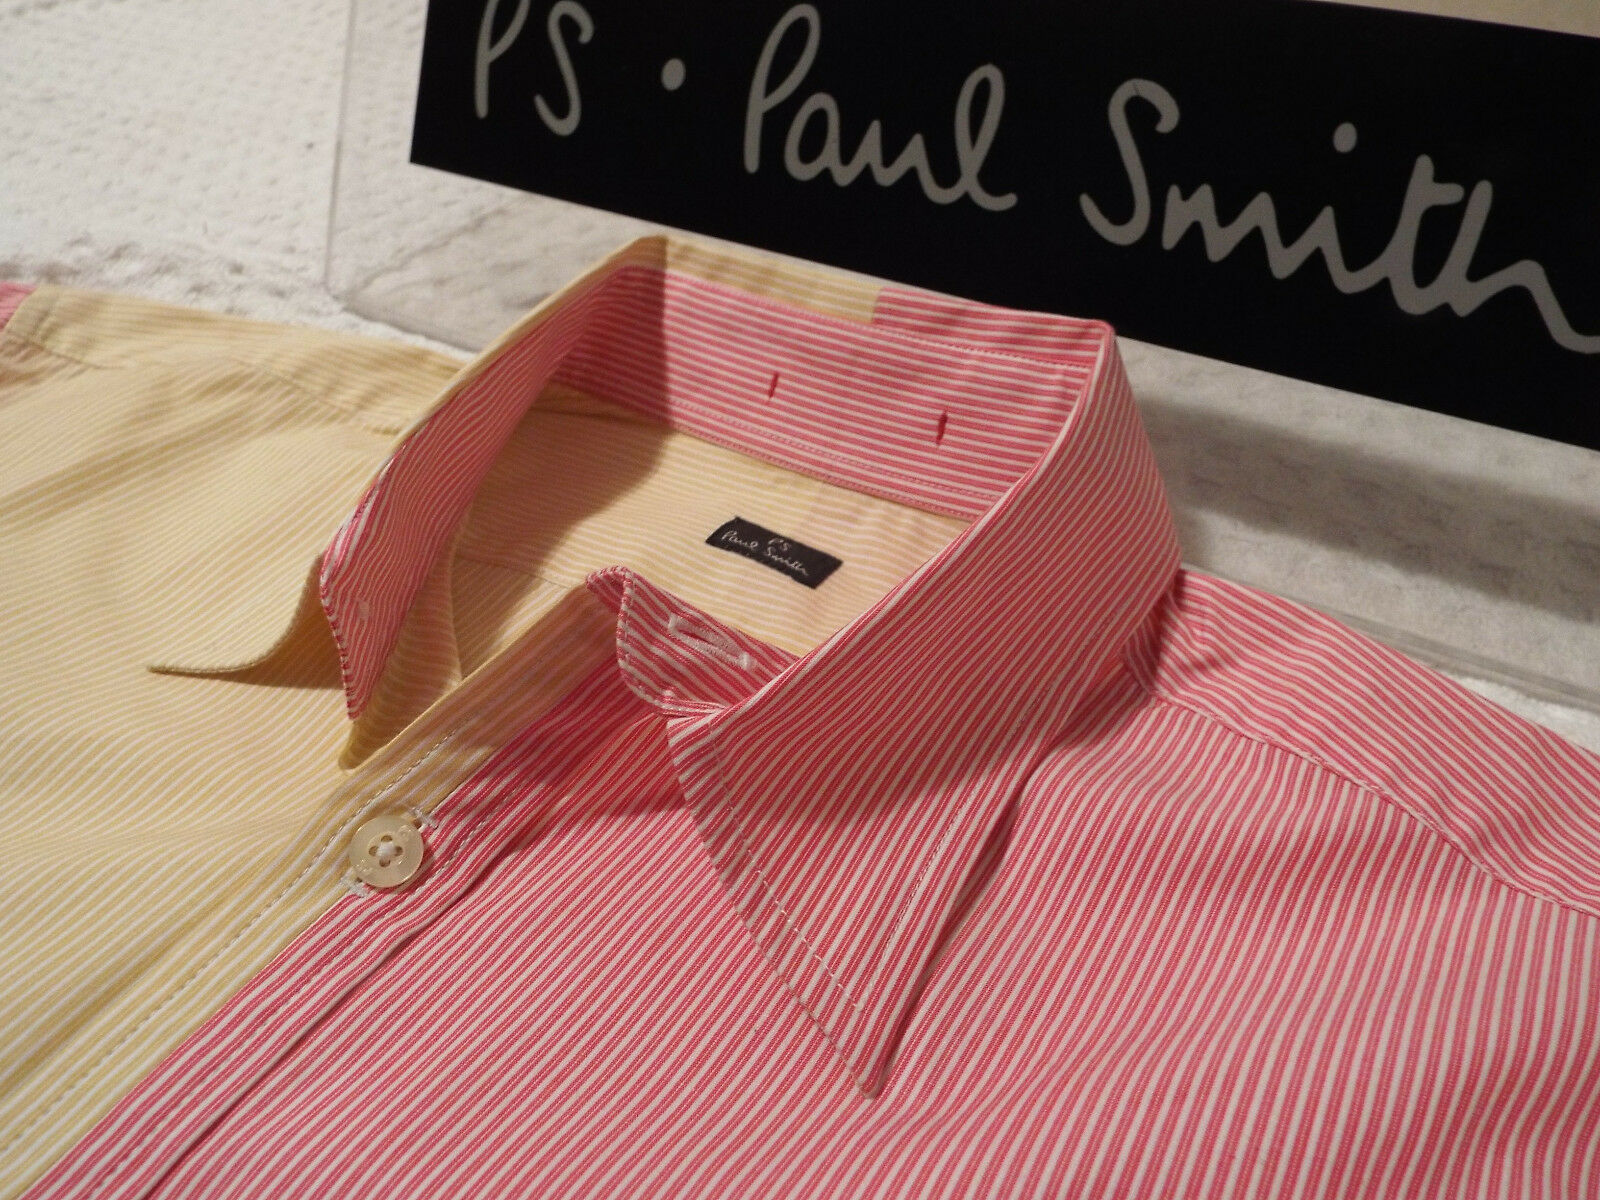 PAUL SMITH Mens Shirt  Size S (CHEST 38 )  RRP +  PANELS OF STRIPES